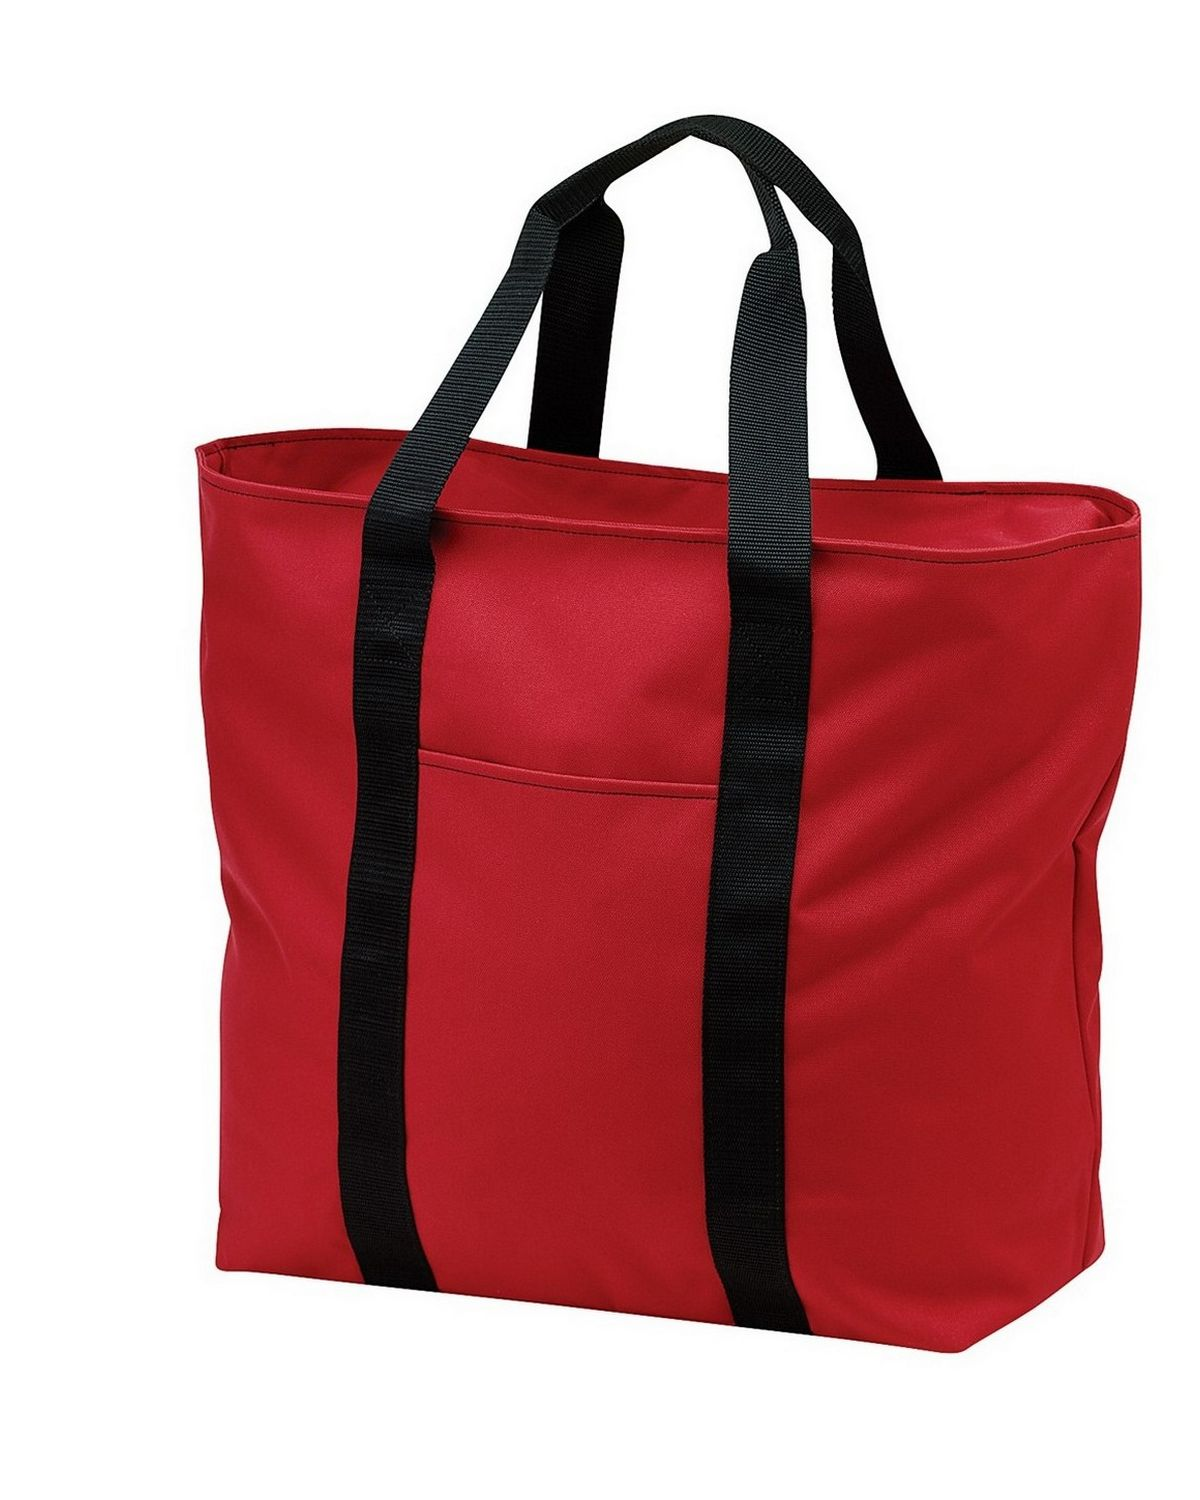 Port Authority B5000 Improved All Purpose Tote - Red/Black - One Size from Port Authority